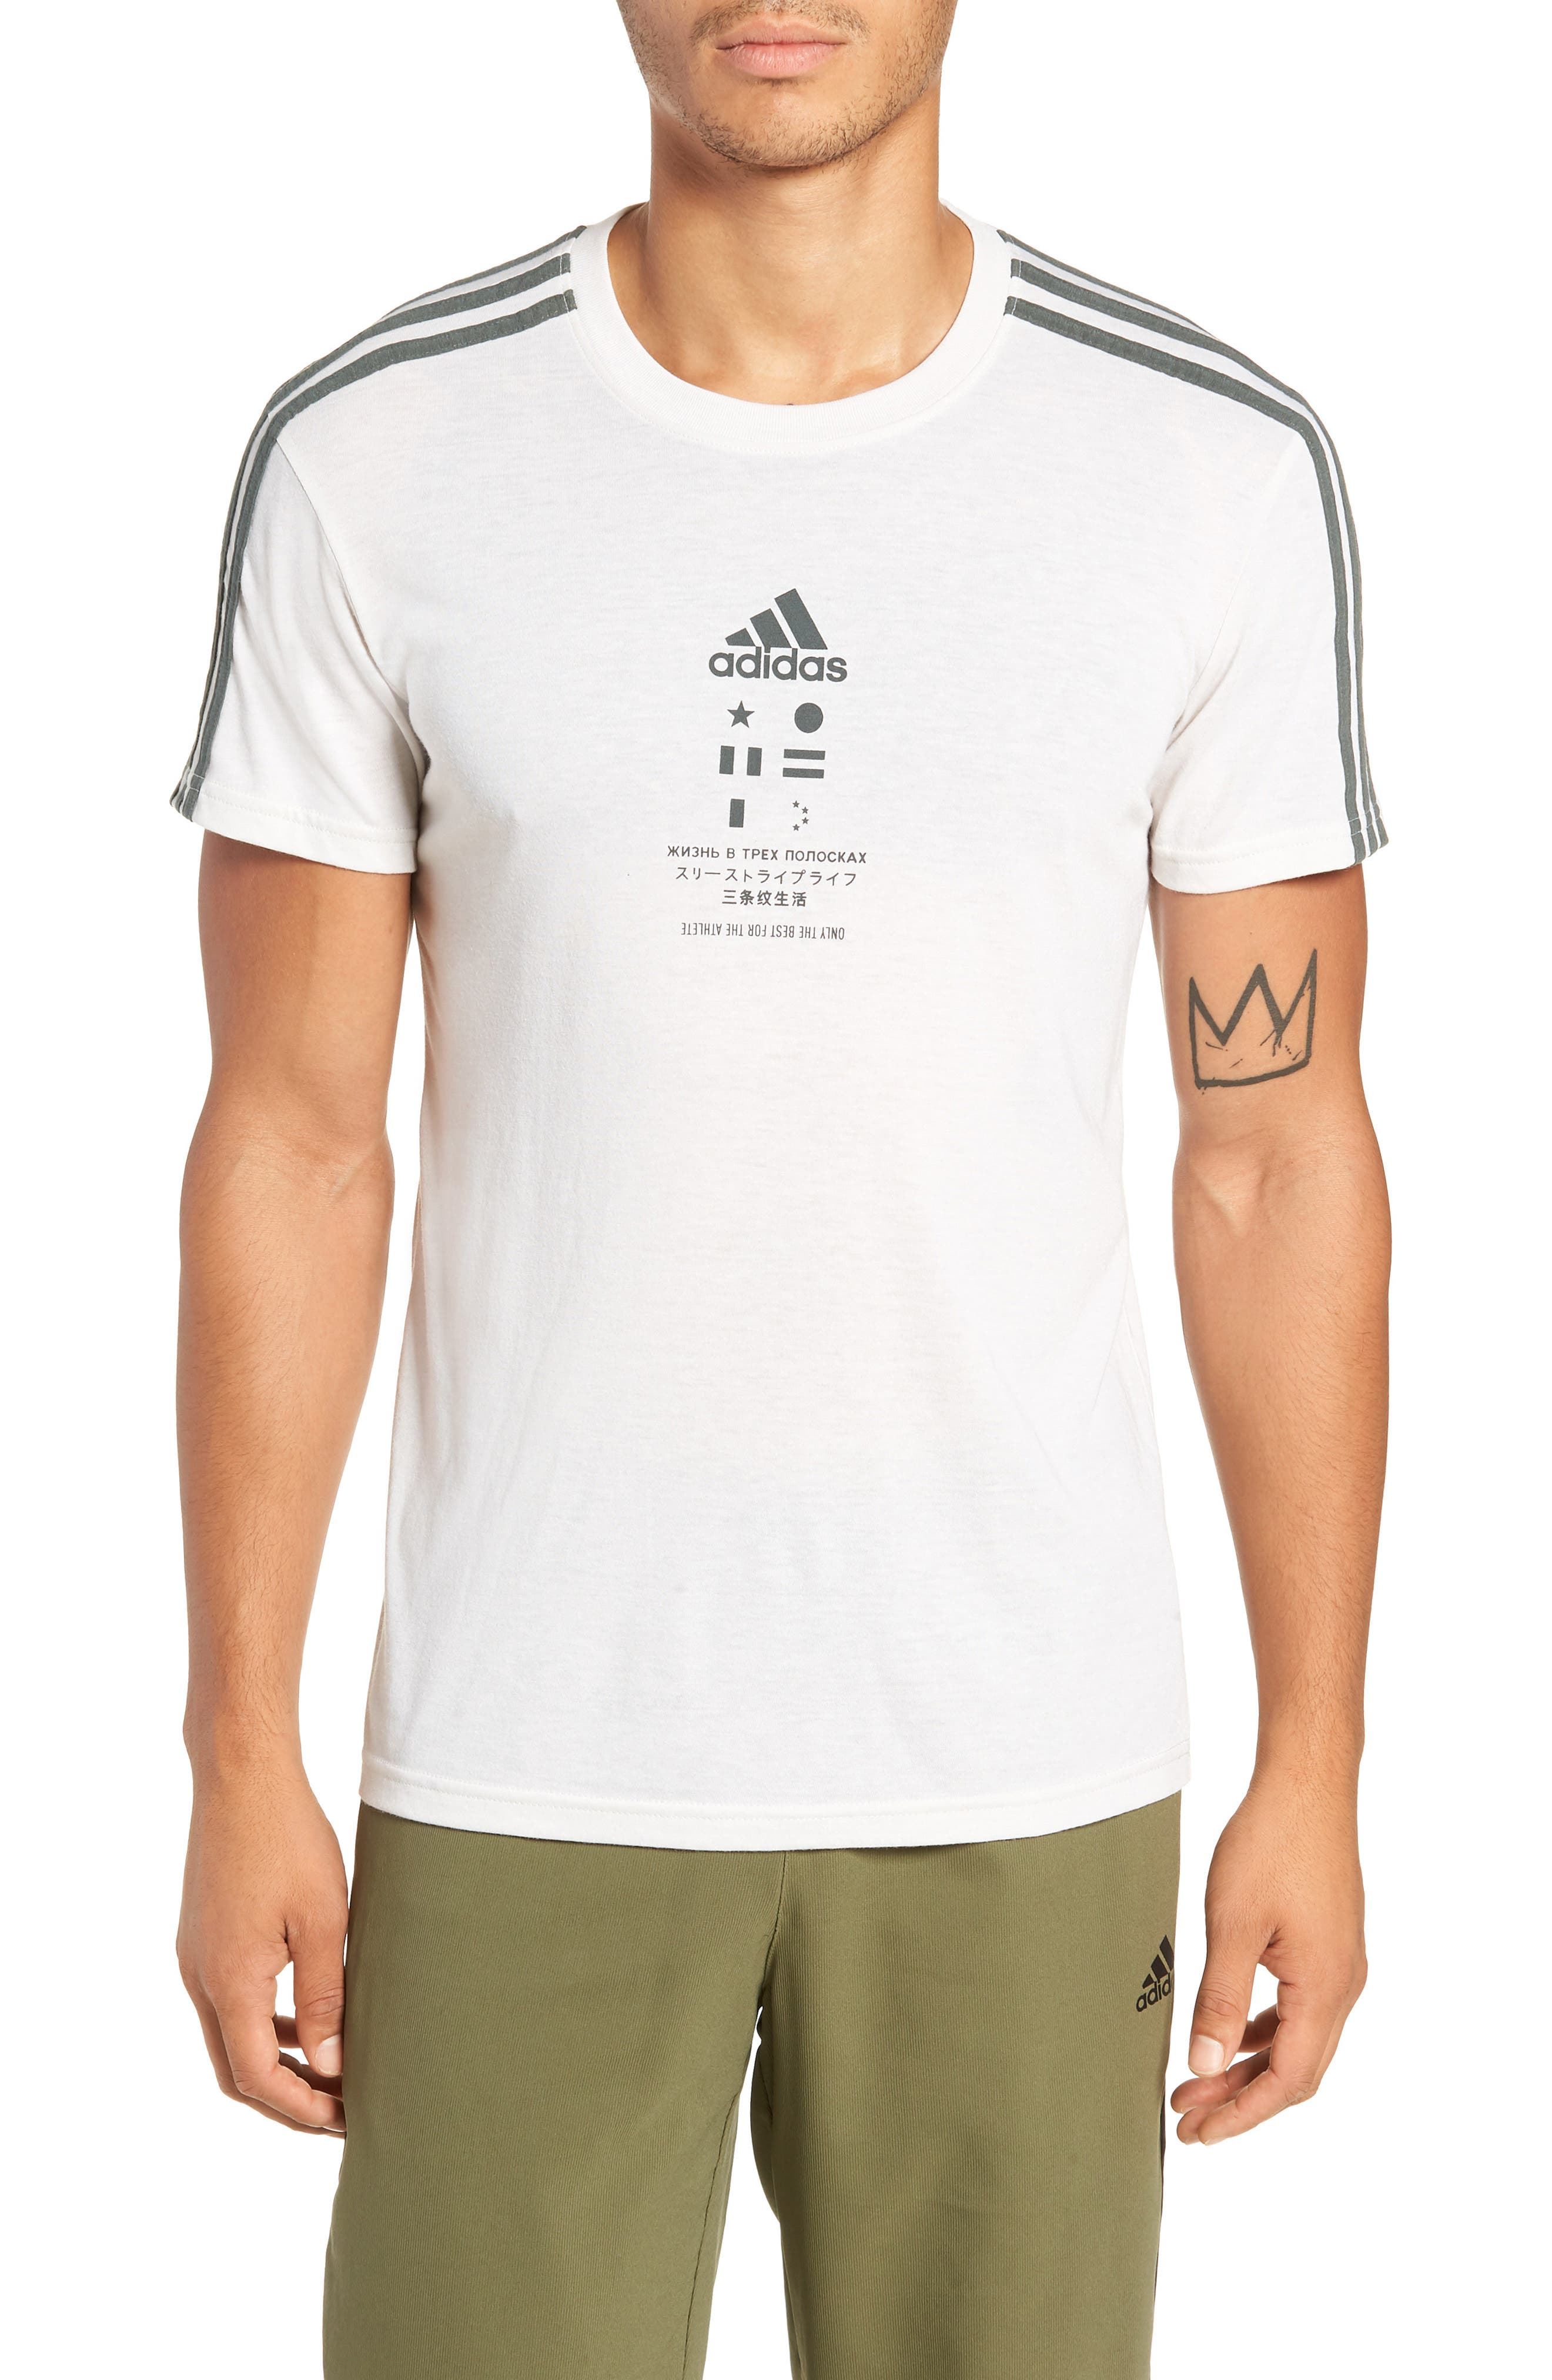 Adidas Ultimate 2.0 Technical T-Shirt, Ivory